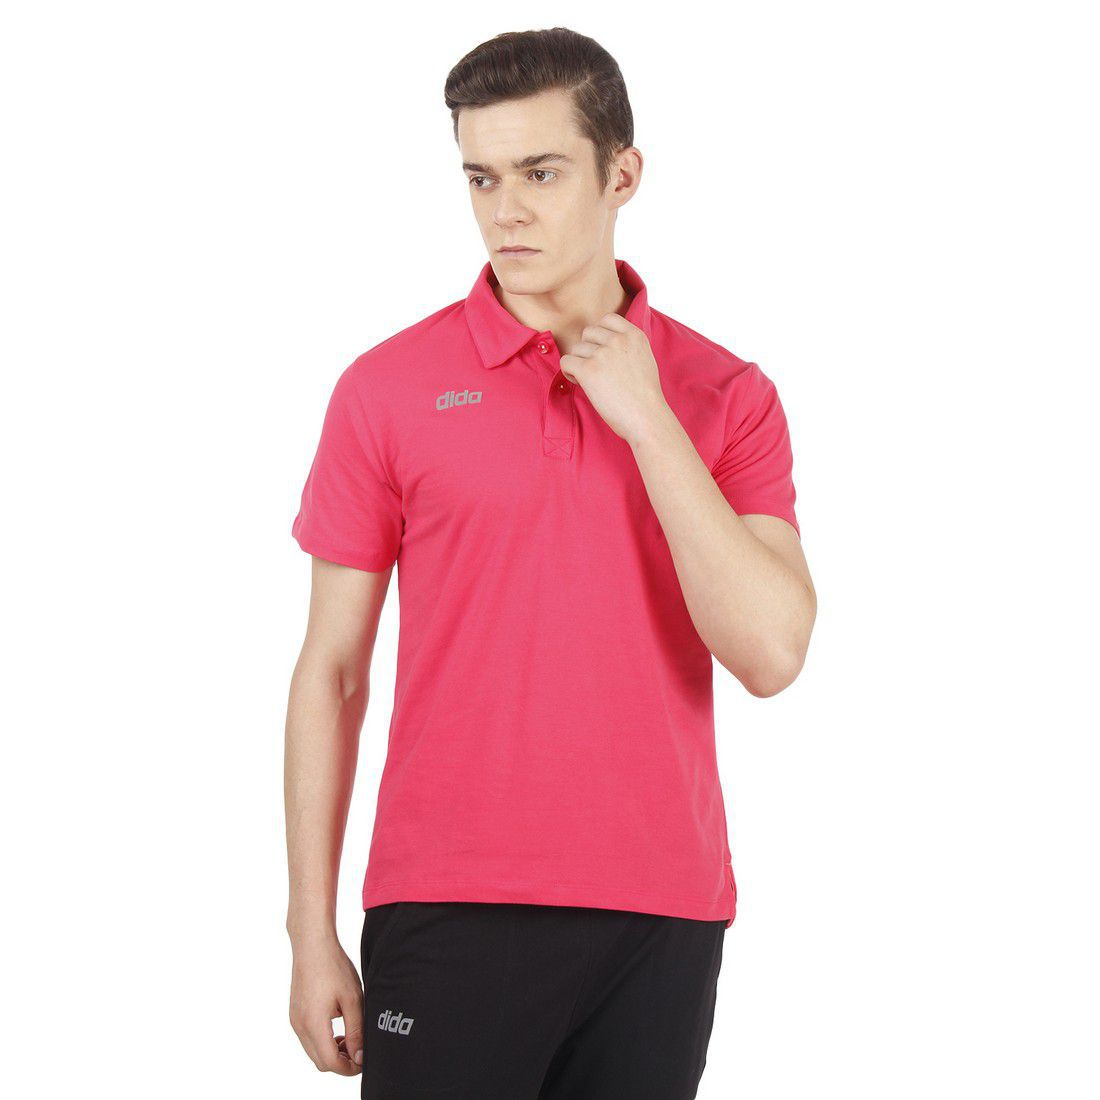 DIDA Pink Cotton Polo T-Shirt